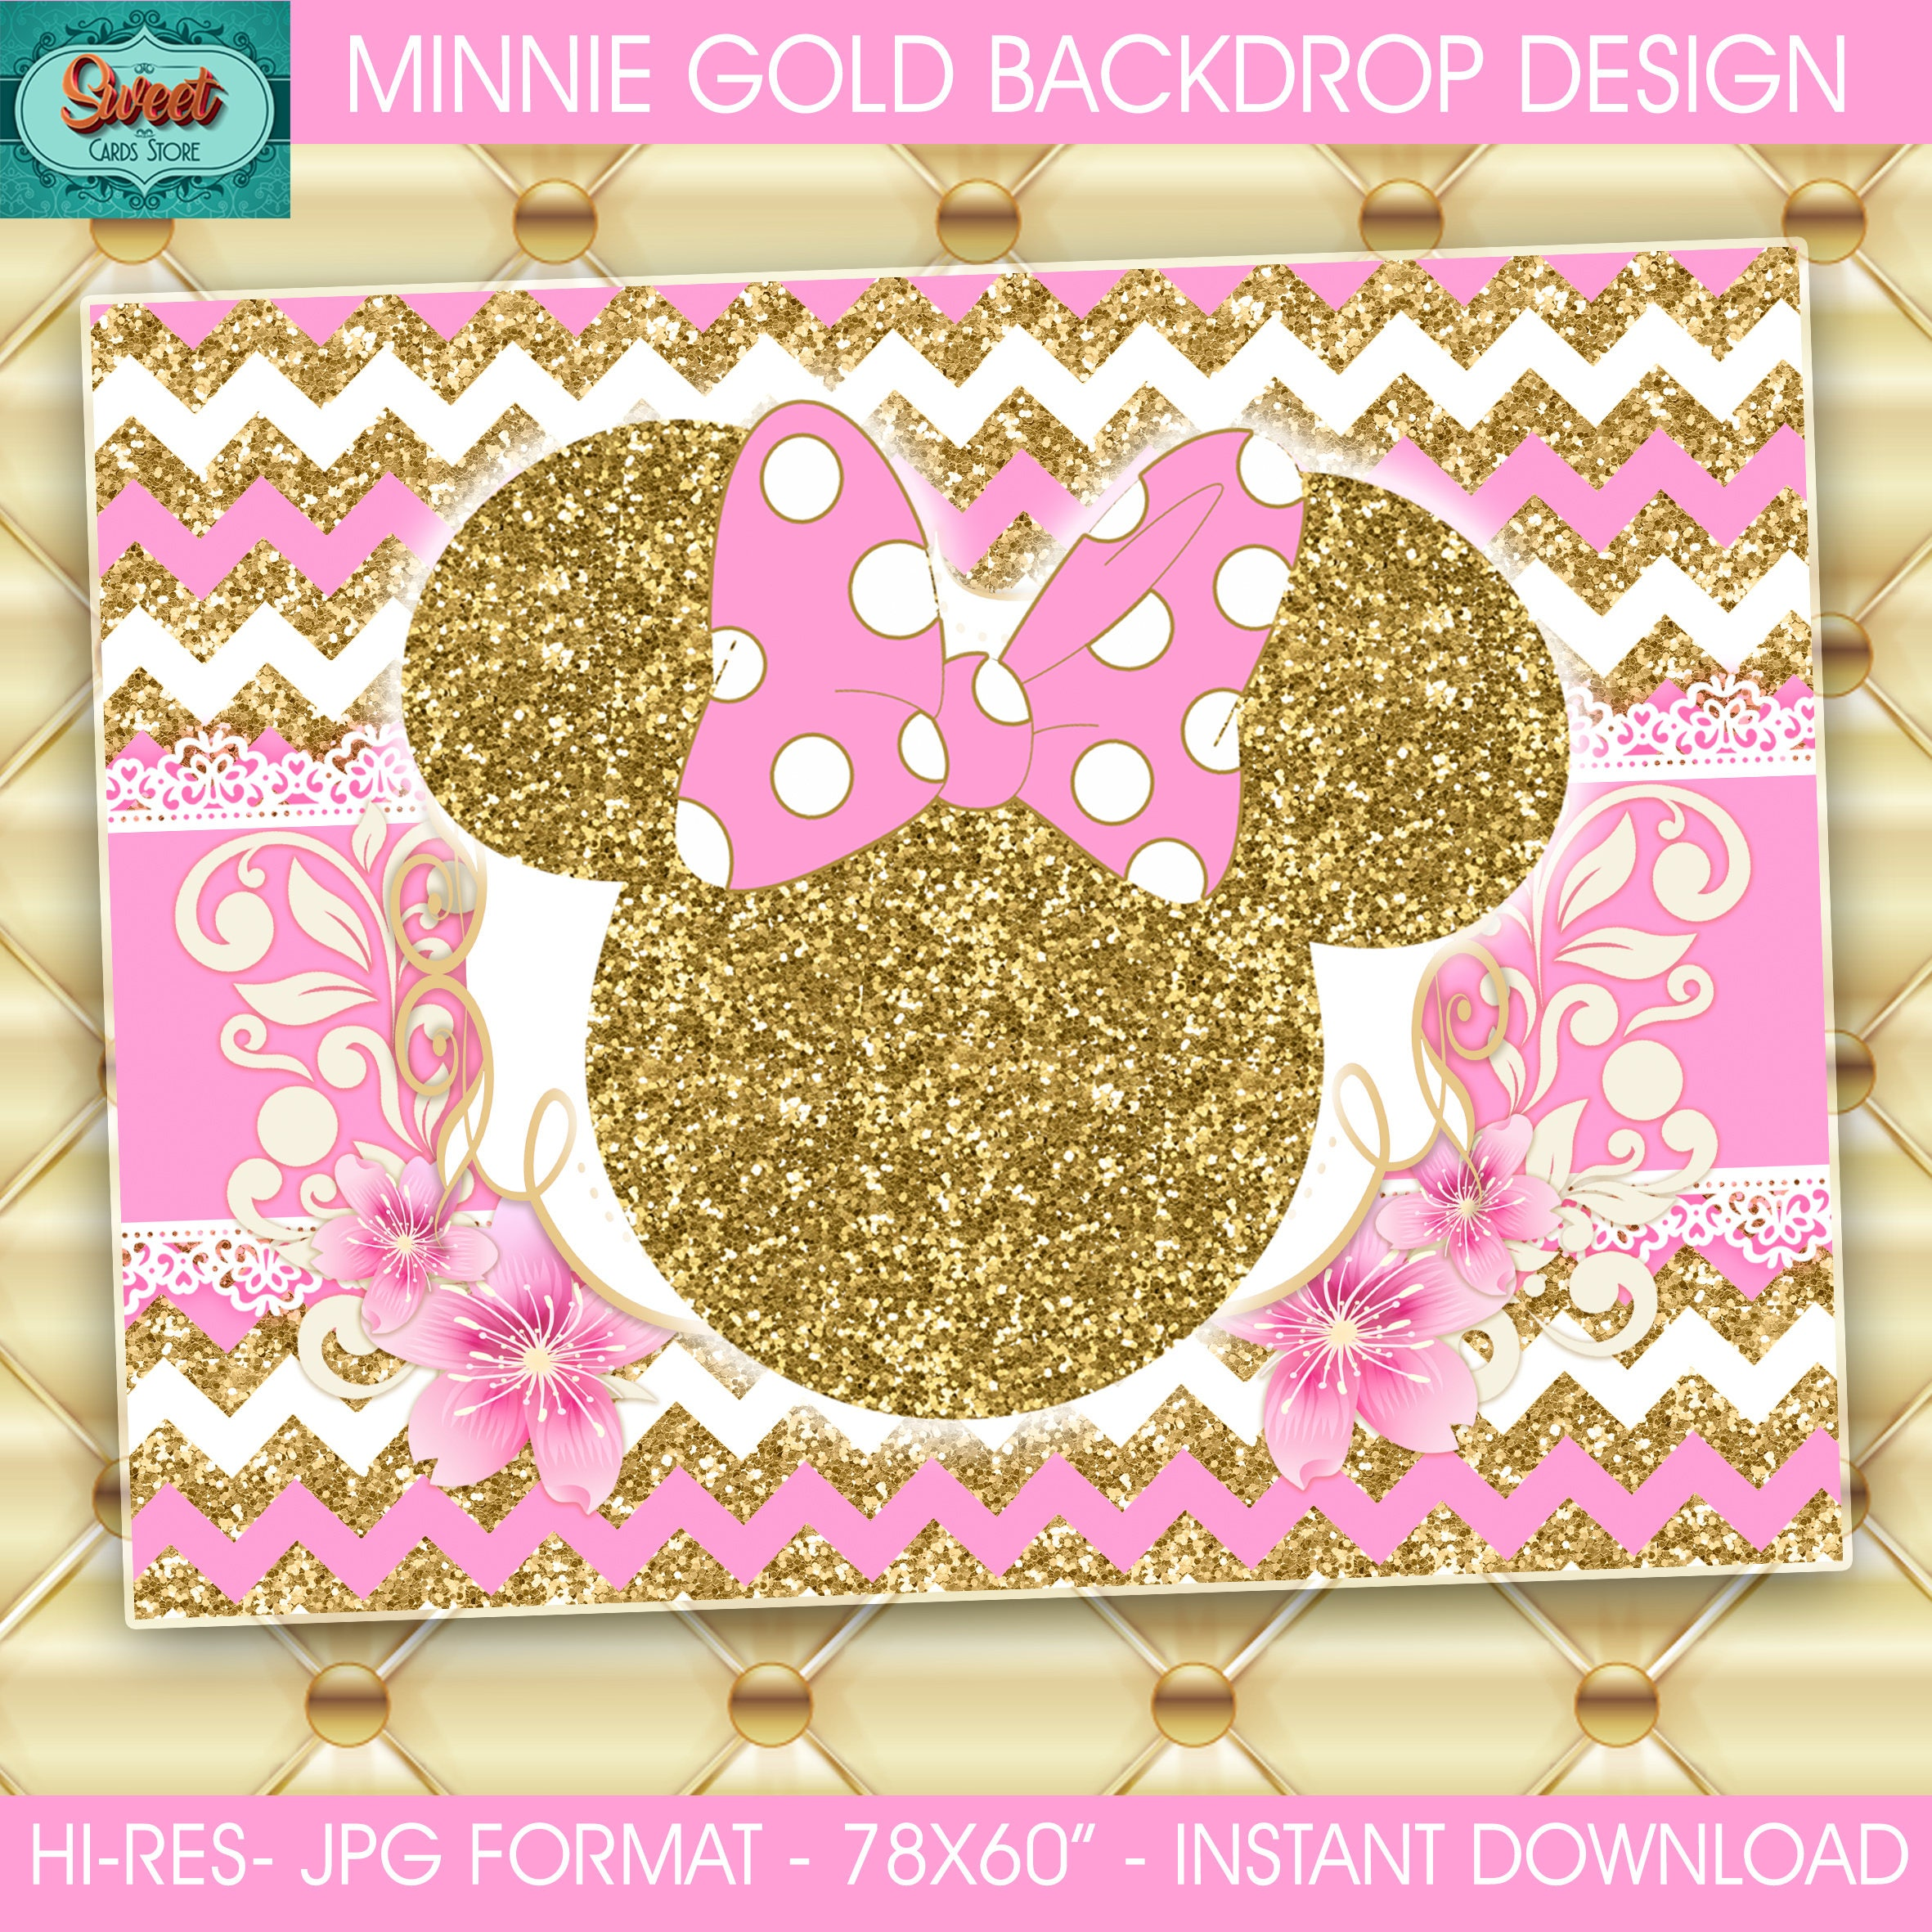 Gold minnie mouse printable digital backdrop background gold | Etsy